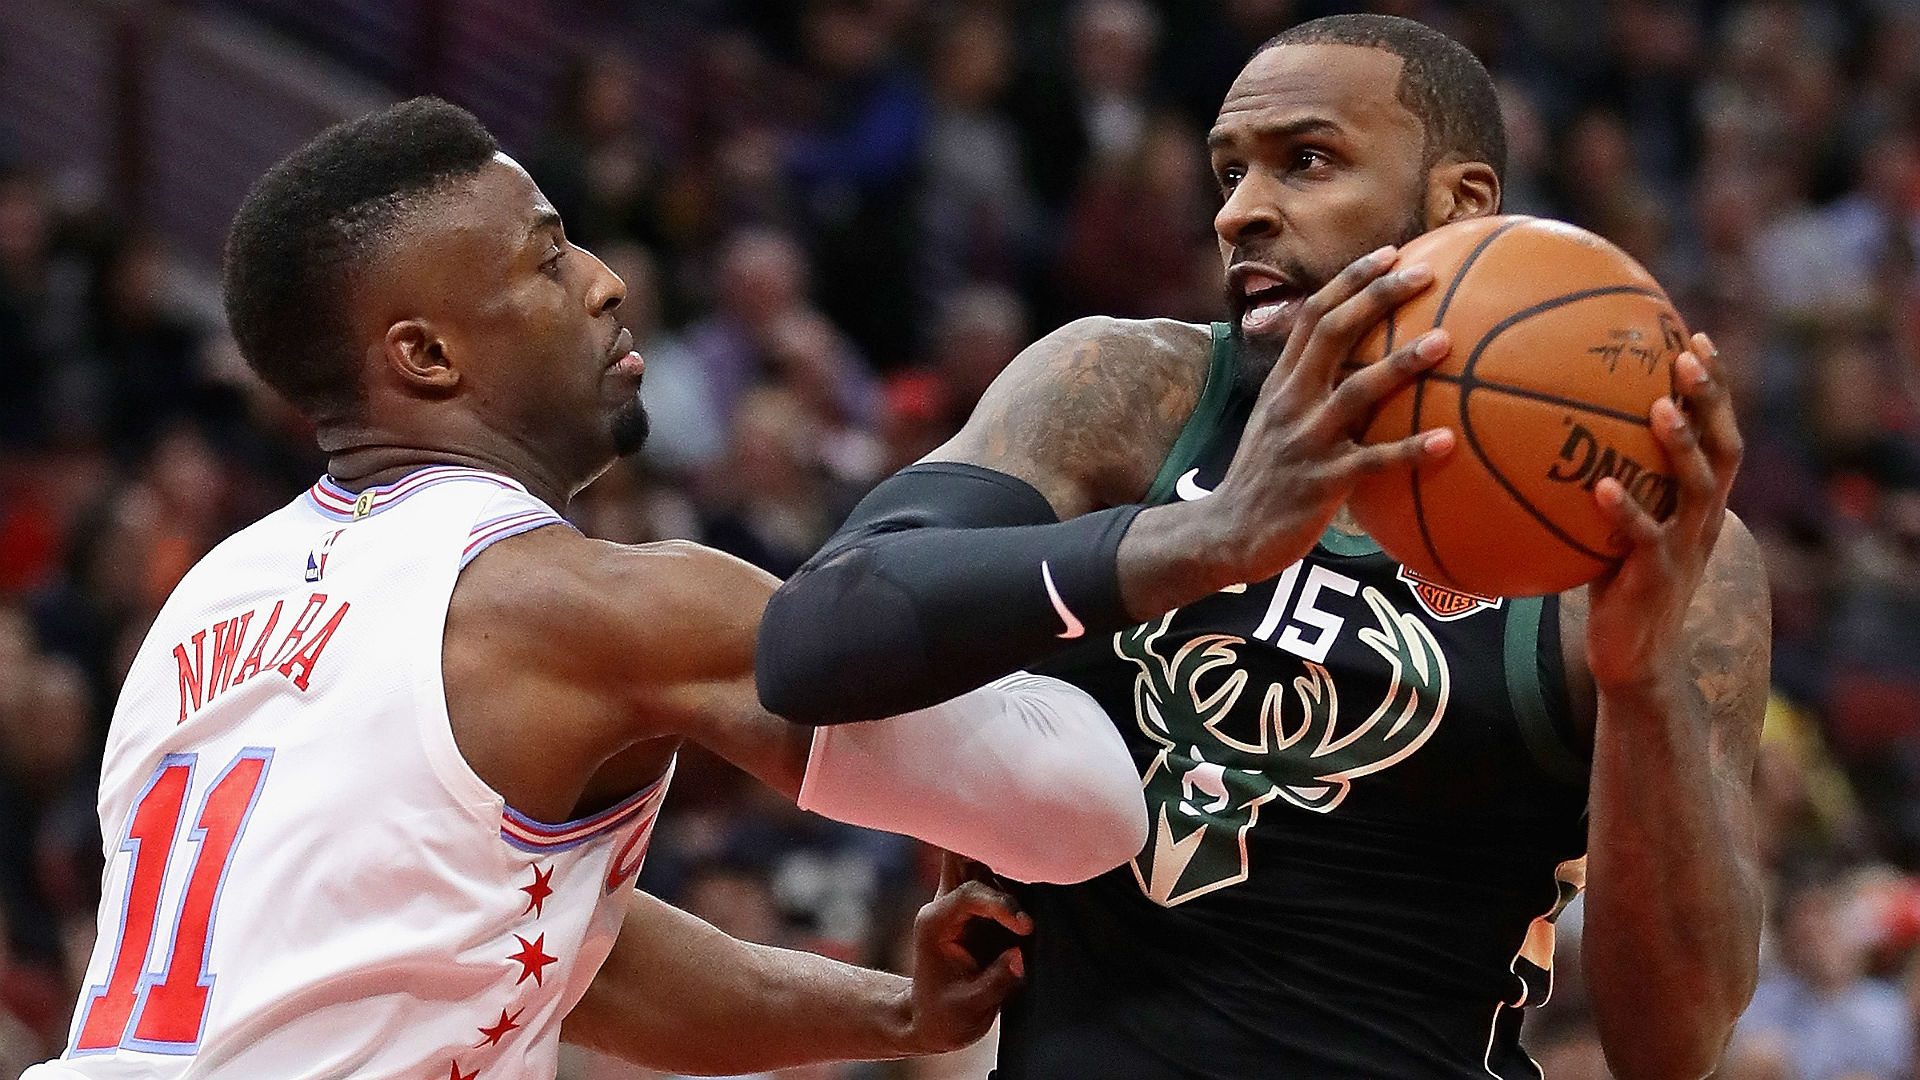 NBA free agency news: Bucks waive Shabazz Muhammad